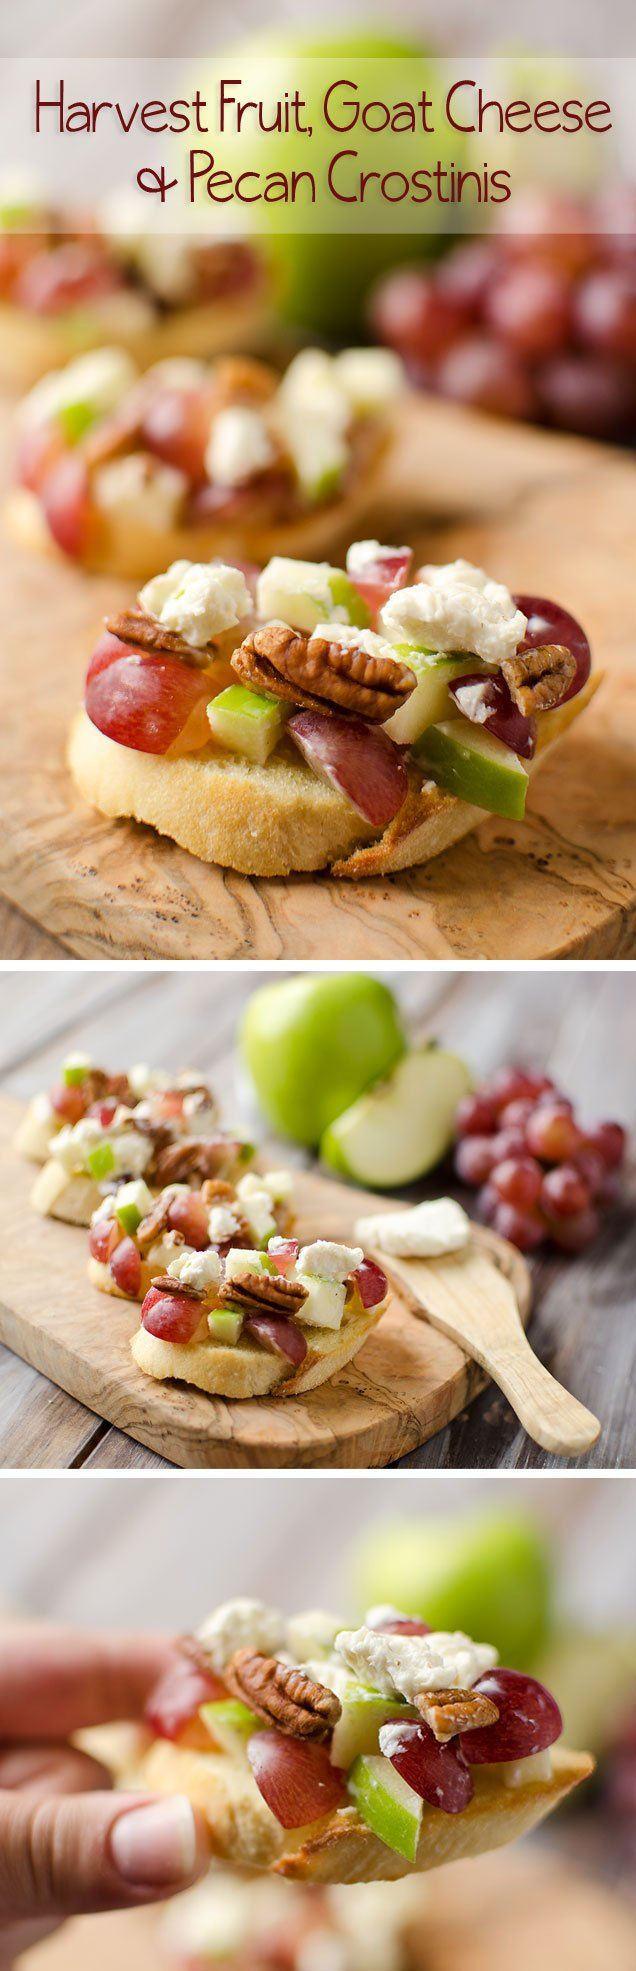 Harvest Fruit, Goat Cheese and Pecan Crostini - these crostini look so festive and are nice and light to start off a day of eating!